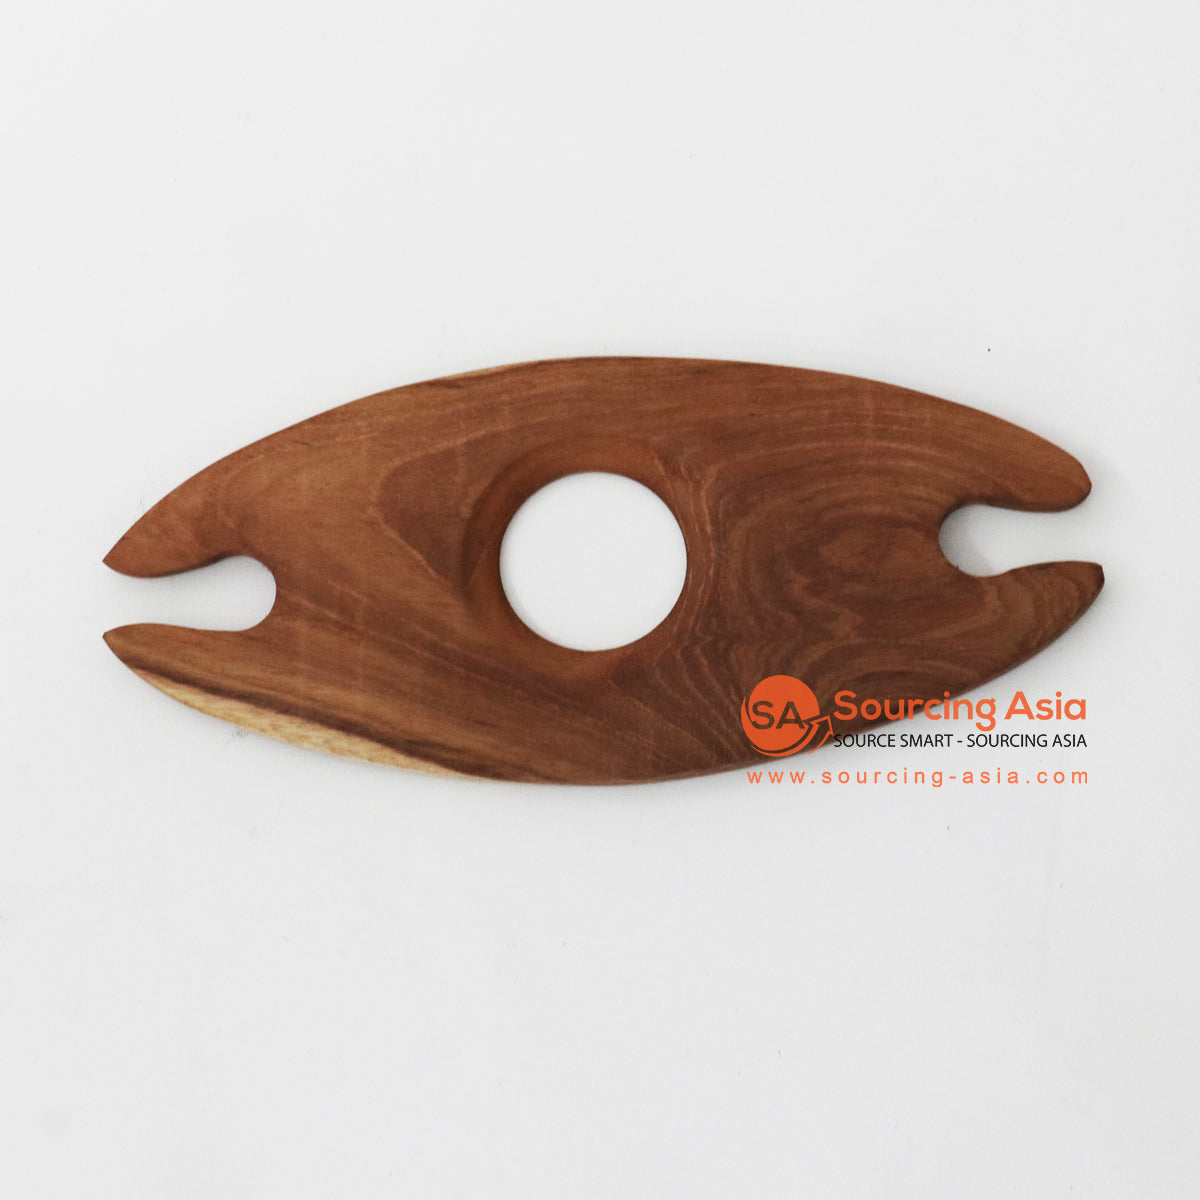 MSB001 TEAK WOOD 2 WINE GLASS HOLDER